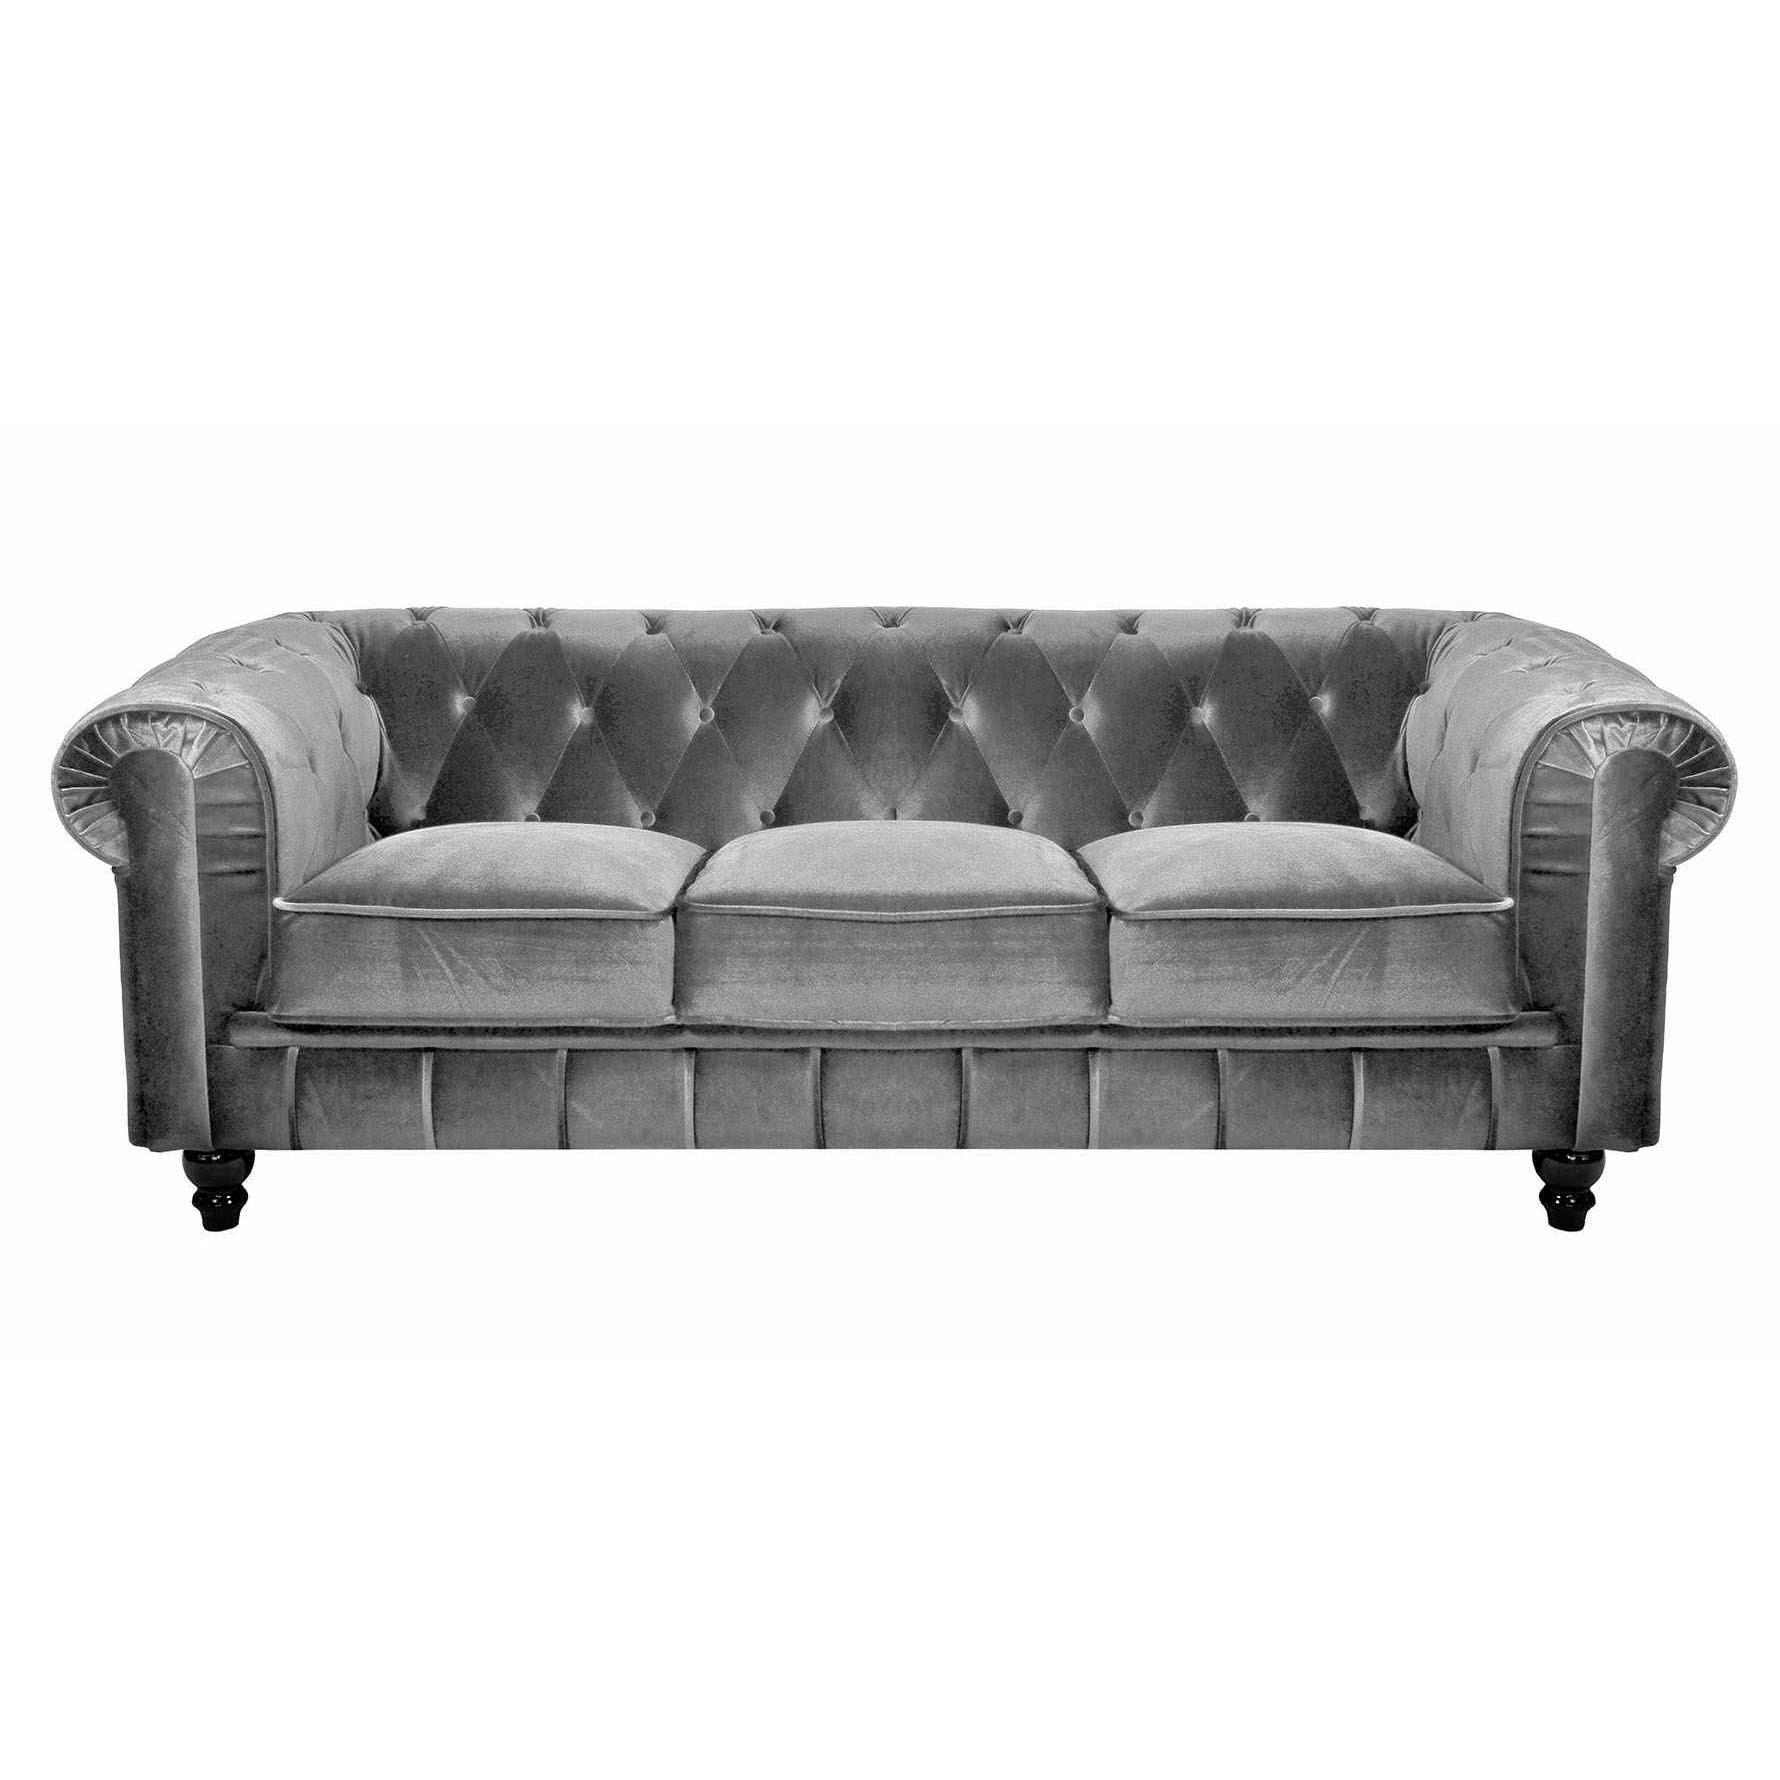 deco in paris canape 3 places velours gris chesterfield